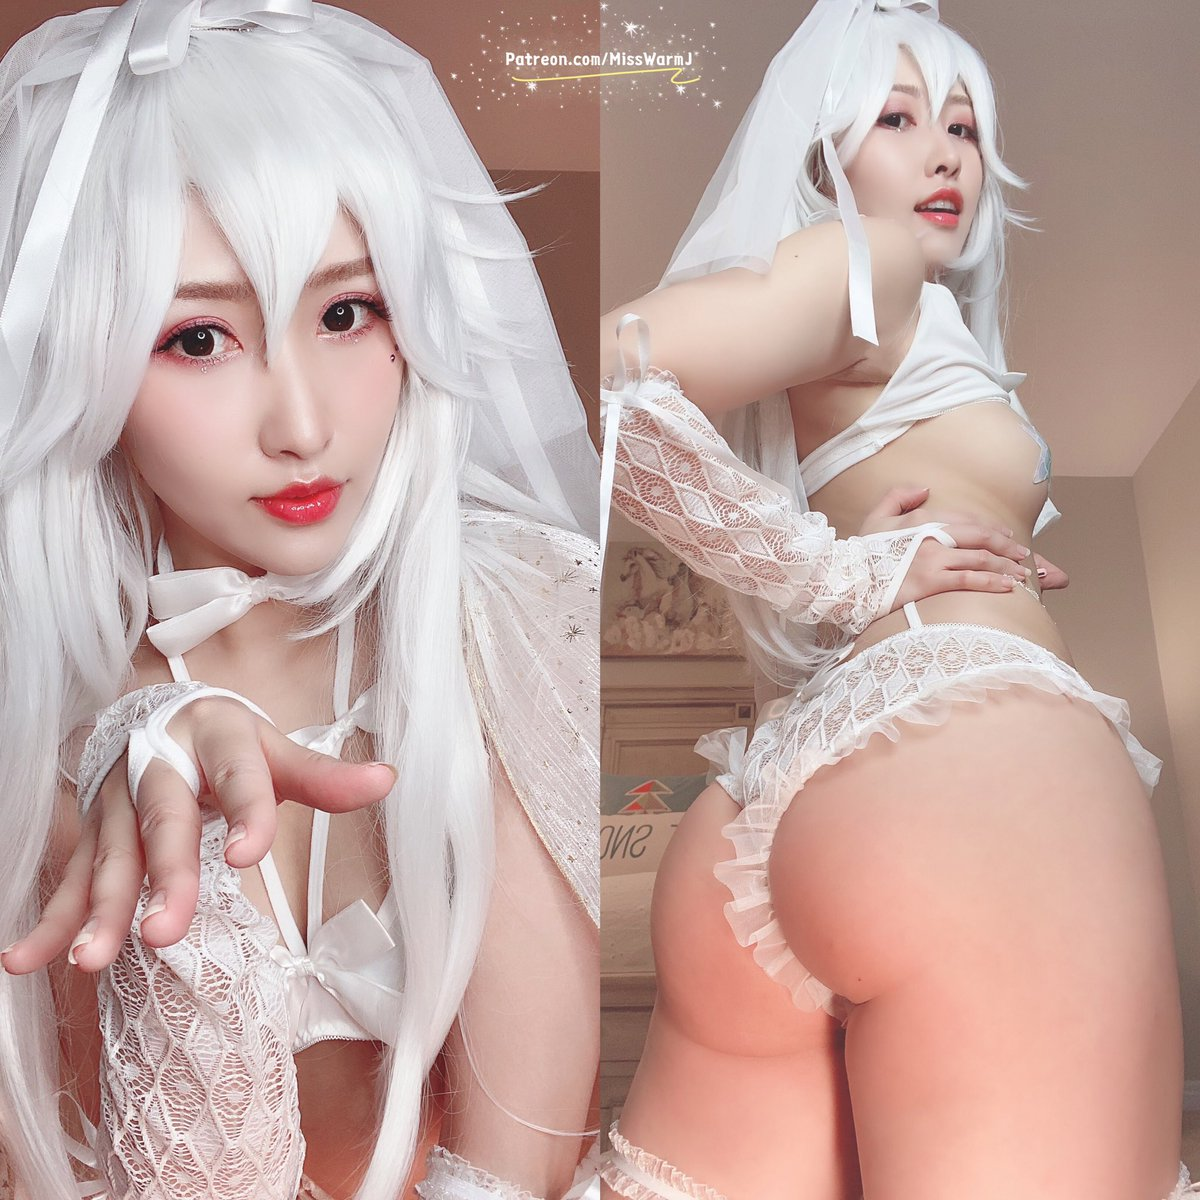 Free rewards will be picked and send on March 3rd if we reached 2K Retweet ☺️♥️And if you want to support, special Bride Boo set is available for All supporters in Tier $2+